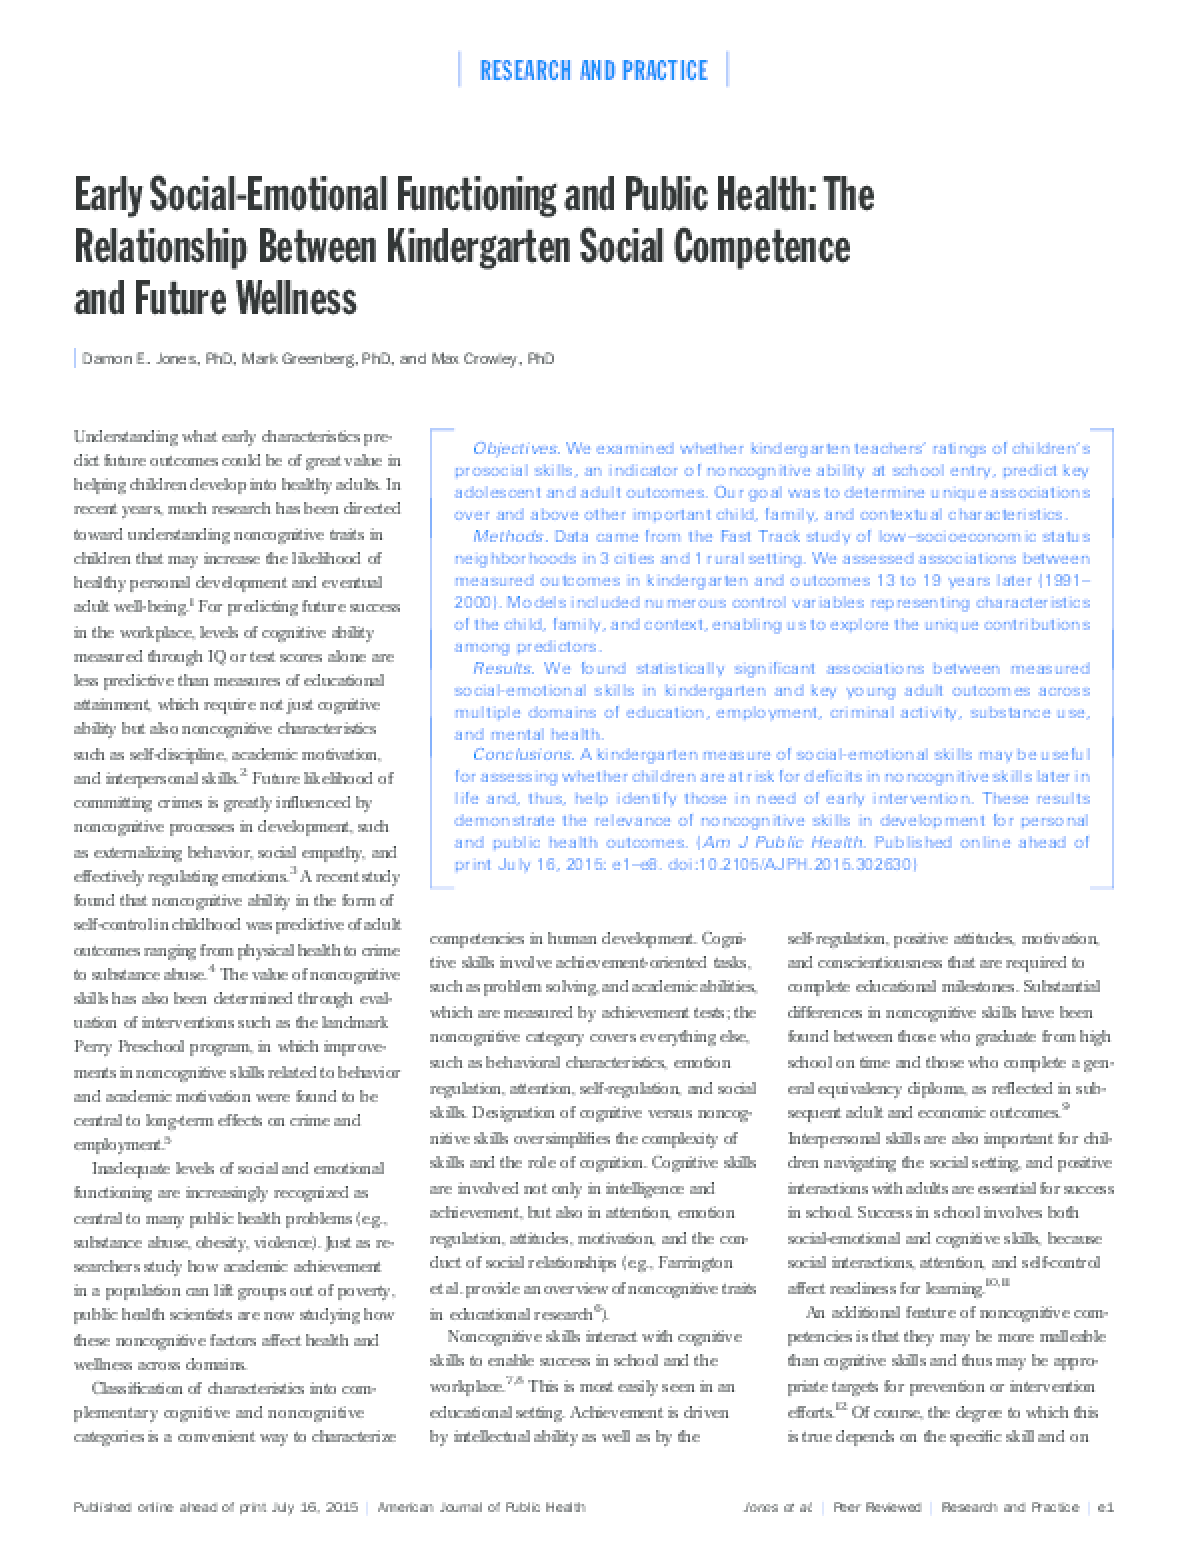 Early Social-Emotional Functioning and Public Health: The Relationship Between Kindergarten Social Competence and Future Wellness